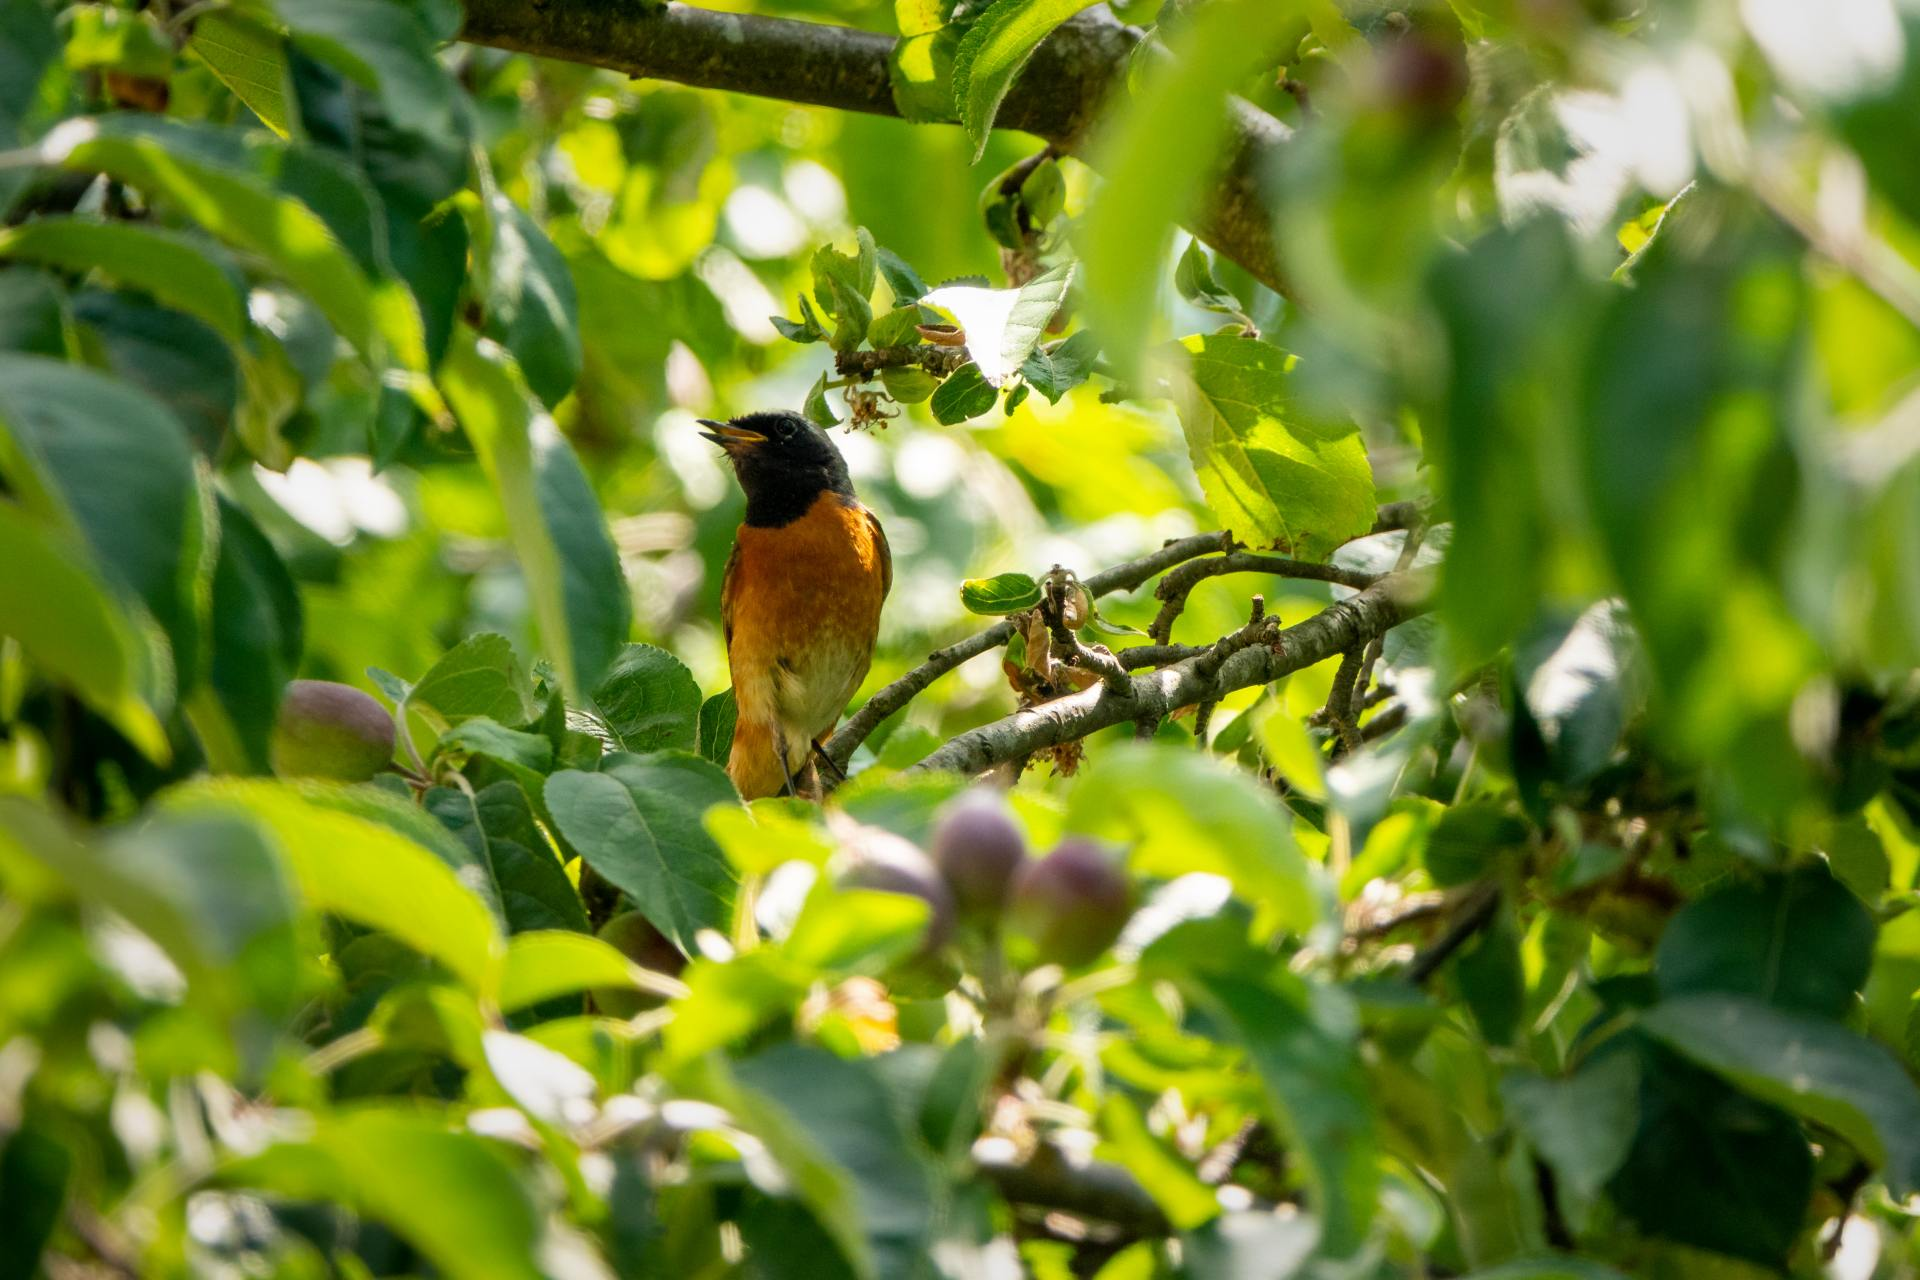 Redstarts are identifiable by their bright orange-red tails. Breeding males look smart, with slate grey upper parts, black faces and wings and an orange rump and chest.